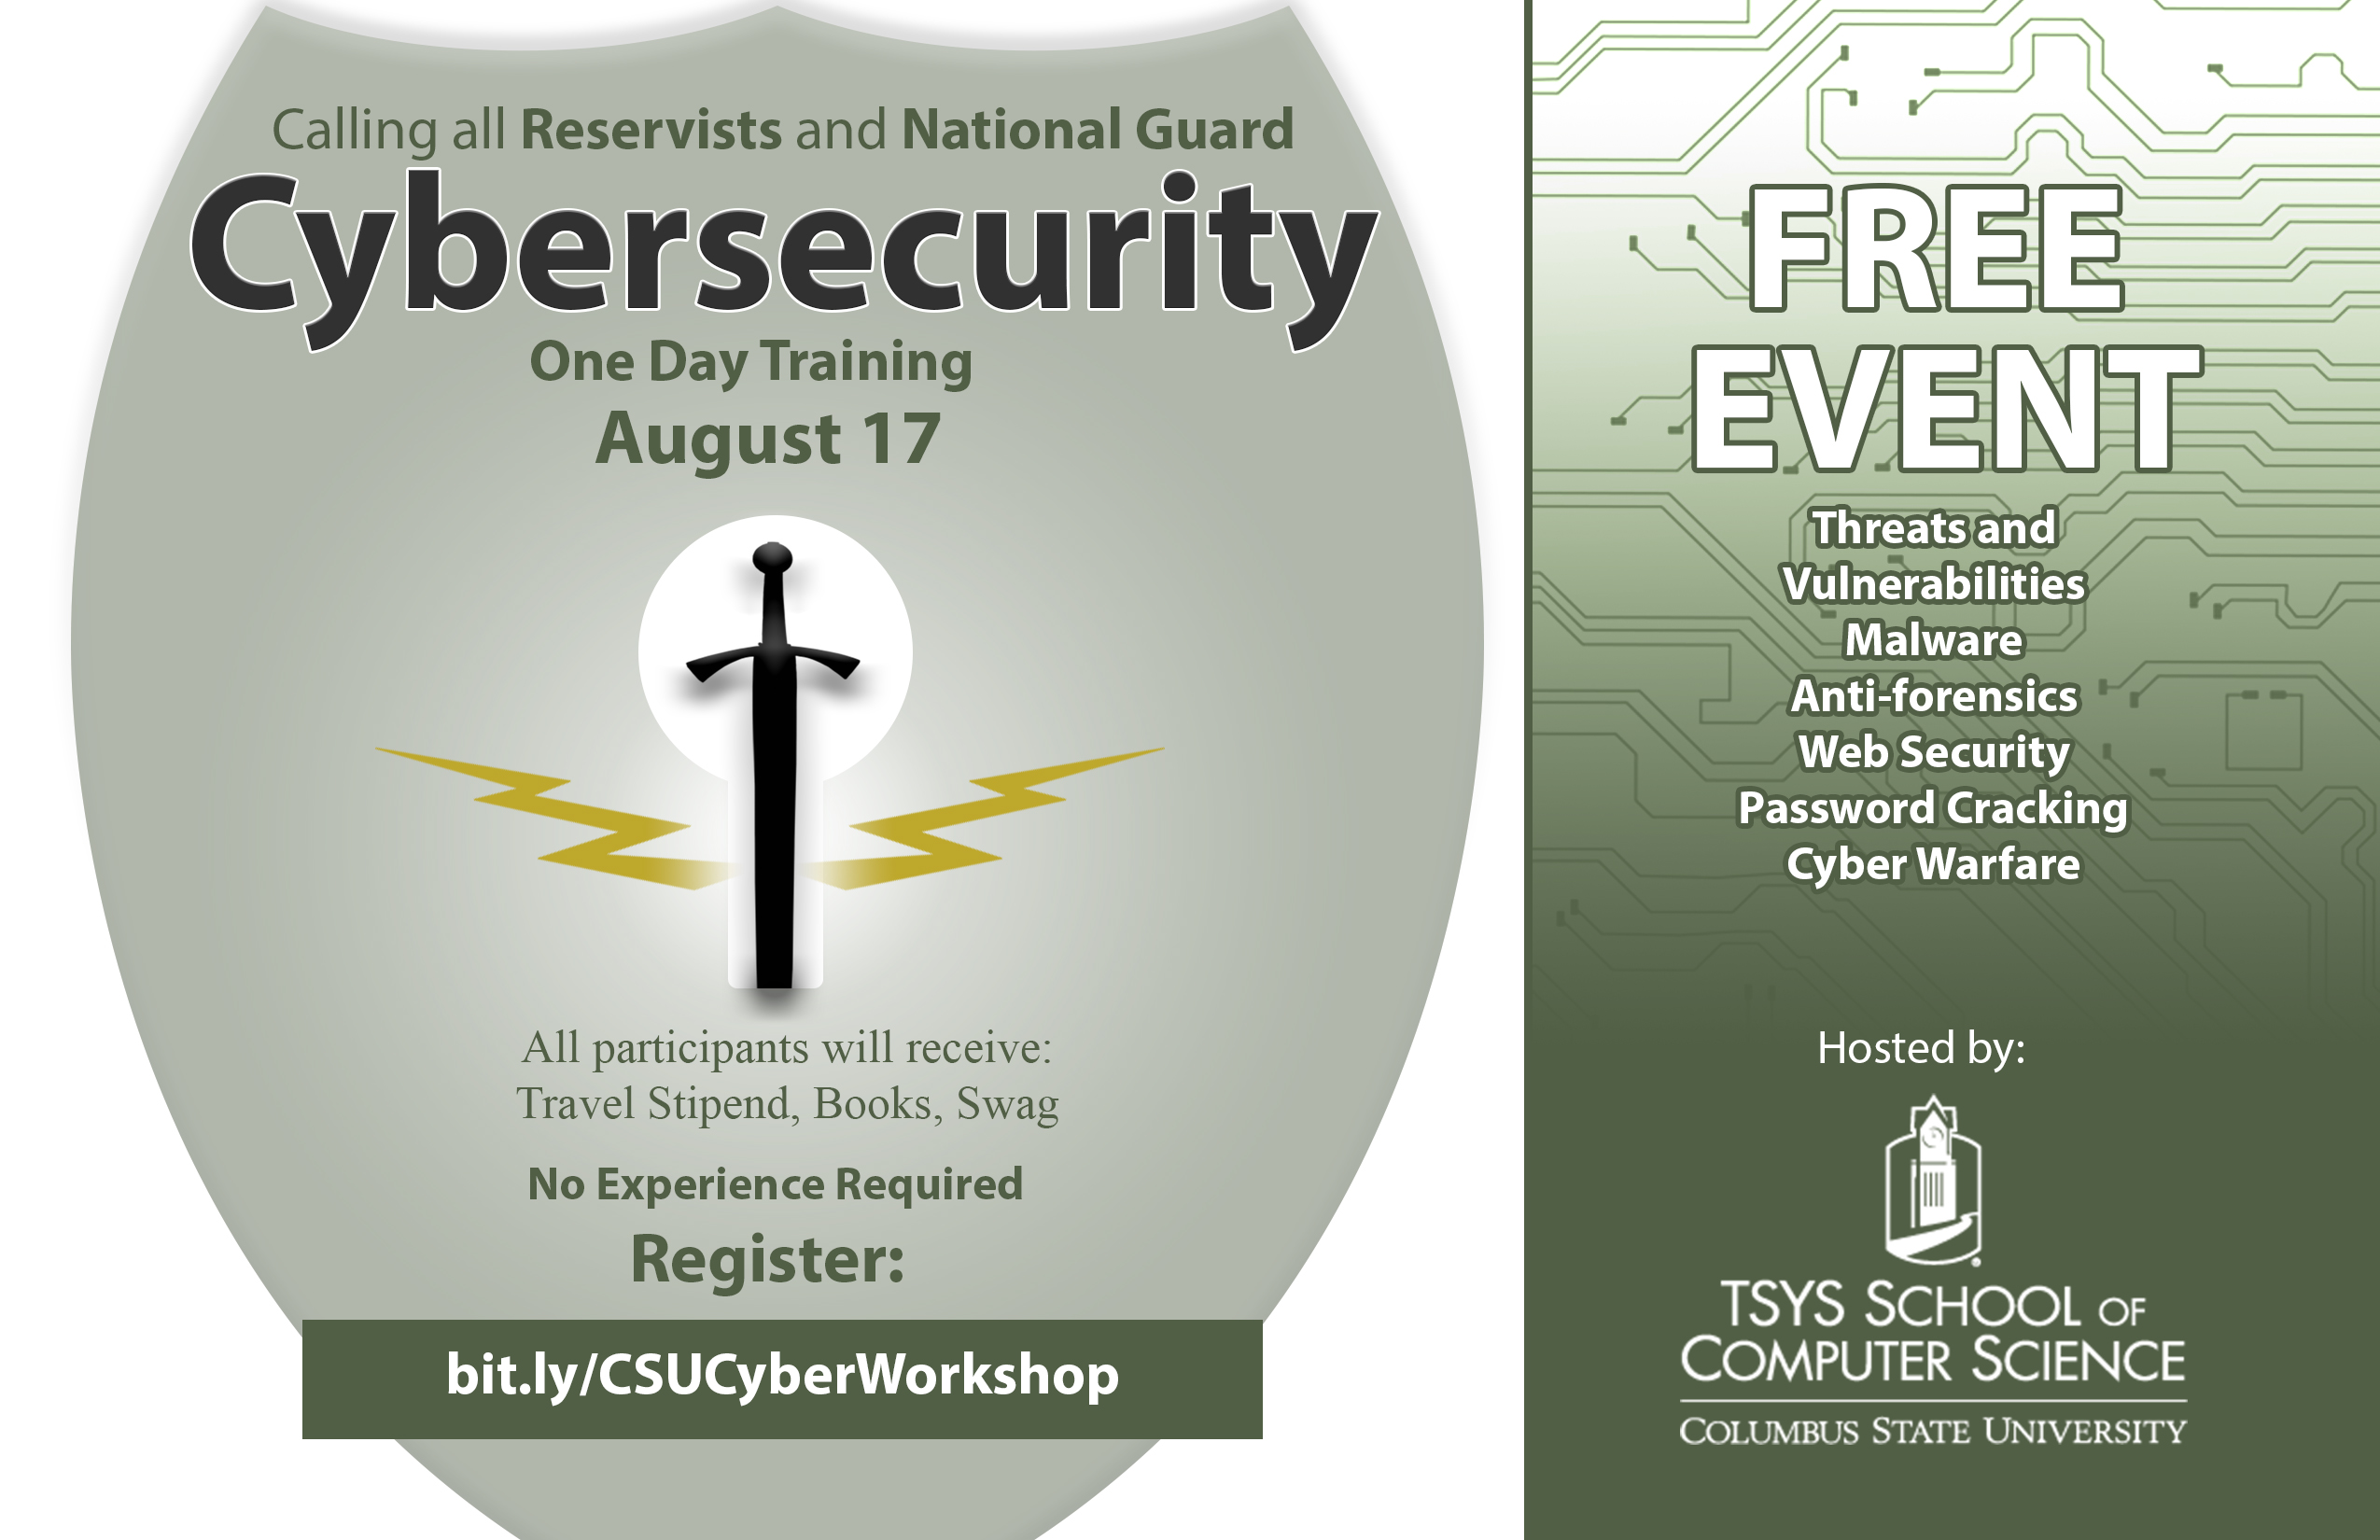 Army Reservists and National Guard free one-day Cybersecurity Training